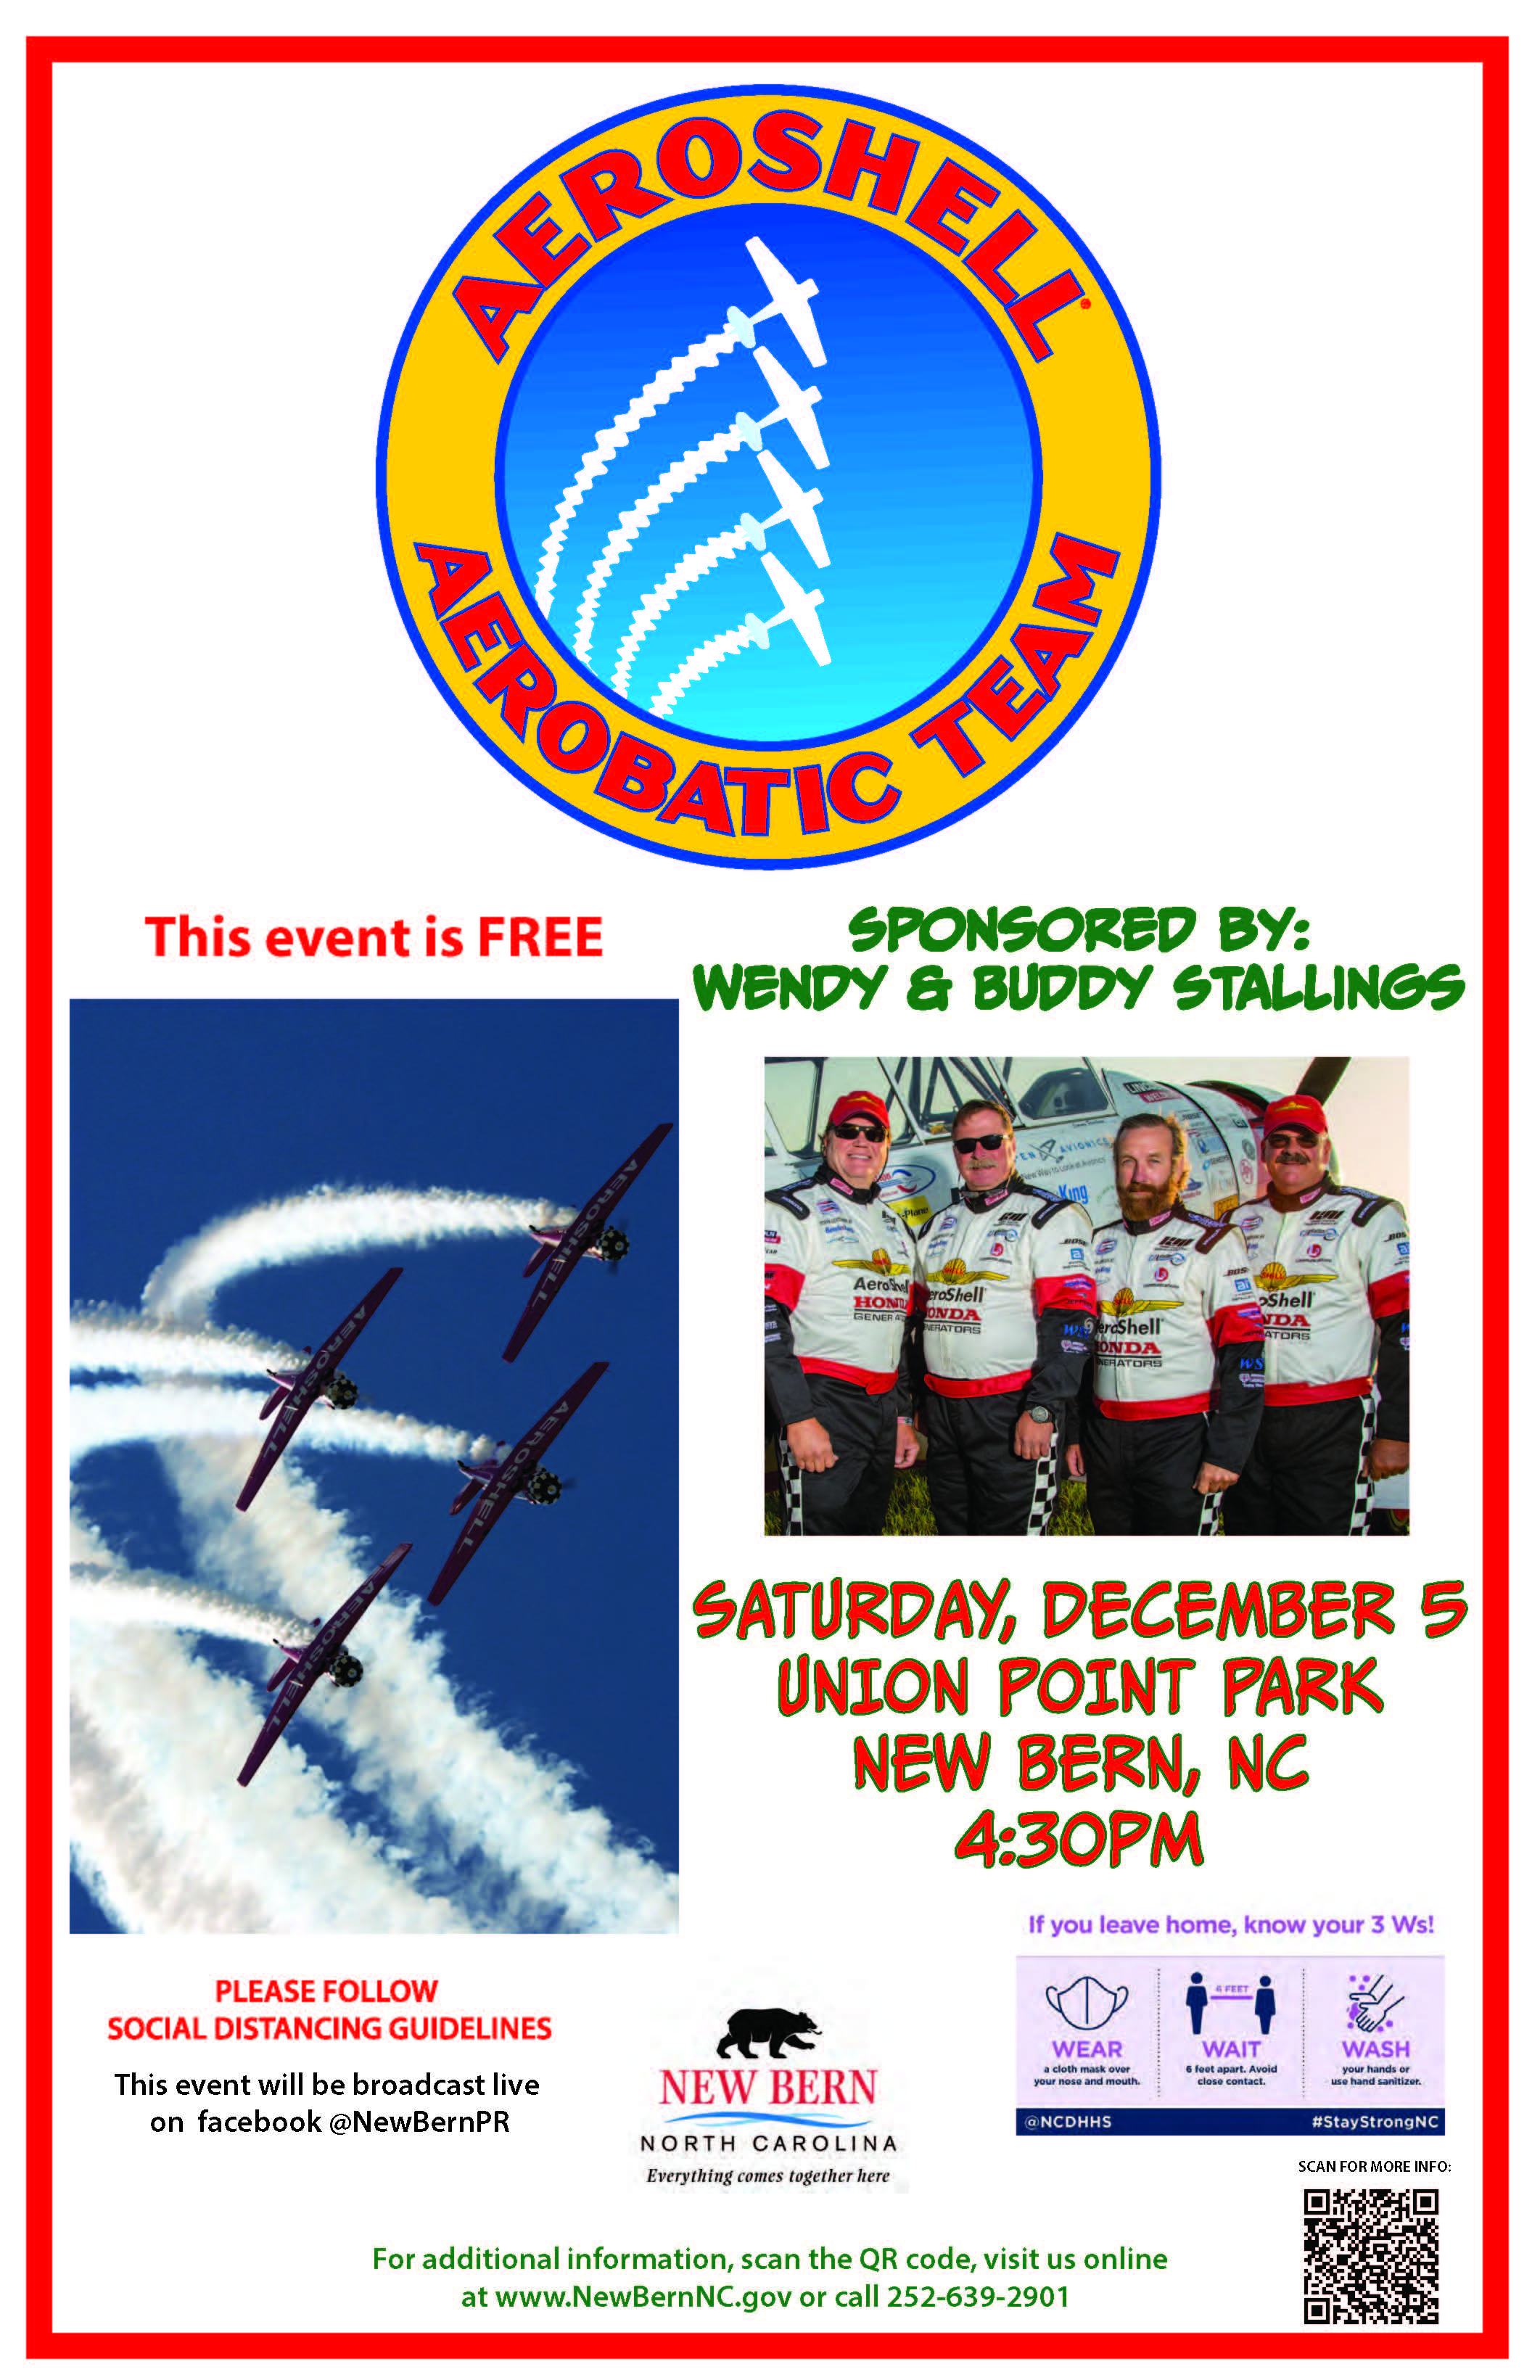 AeroShell Aerobatic Team to Perform Night Show in New Bern